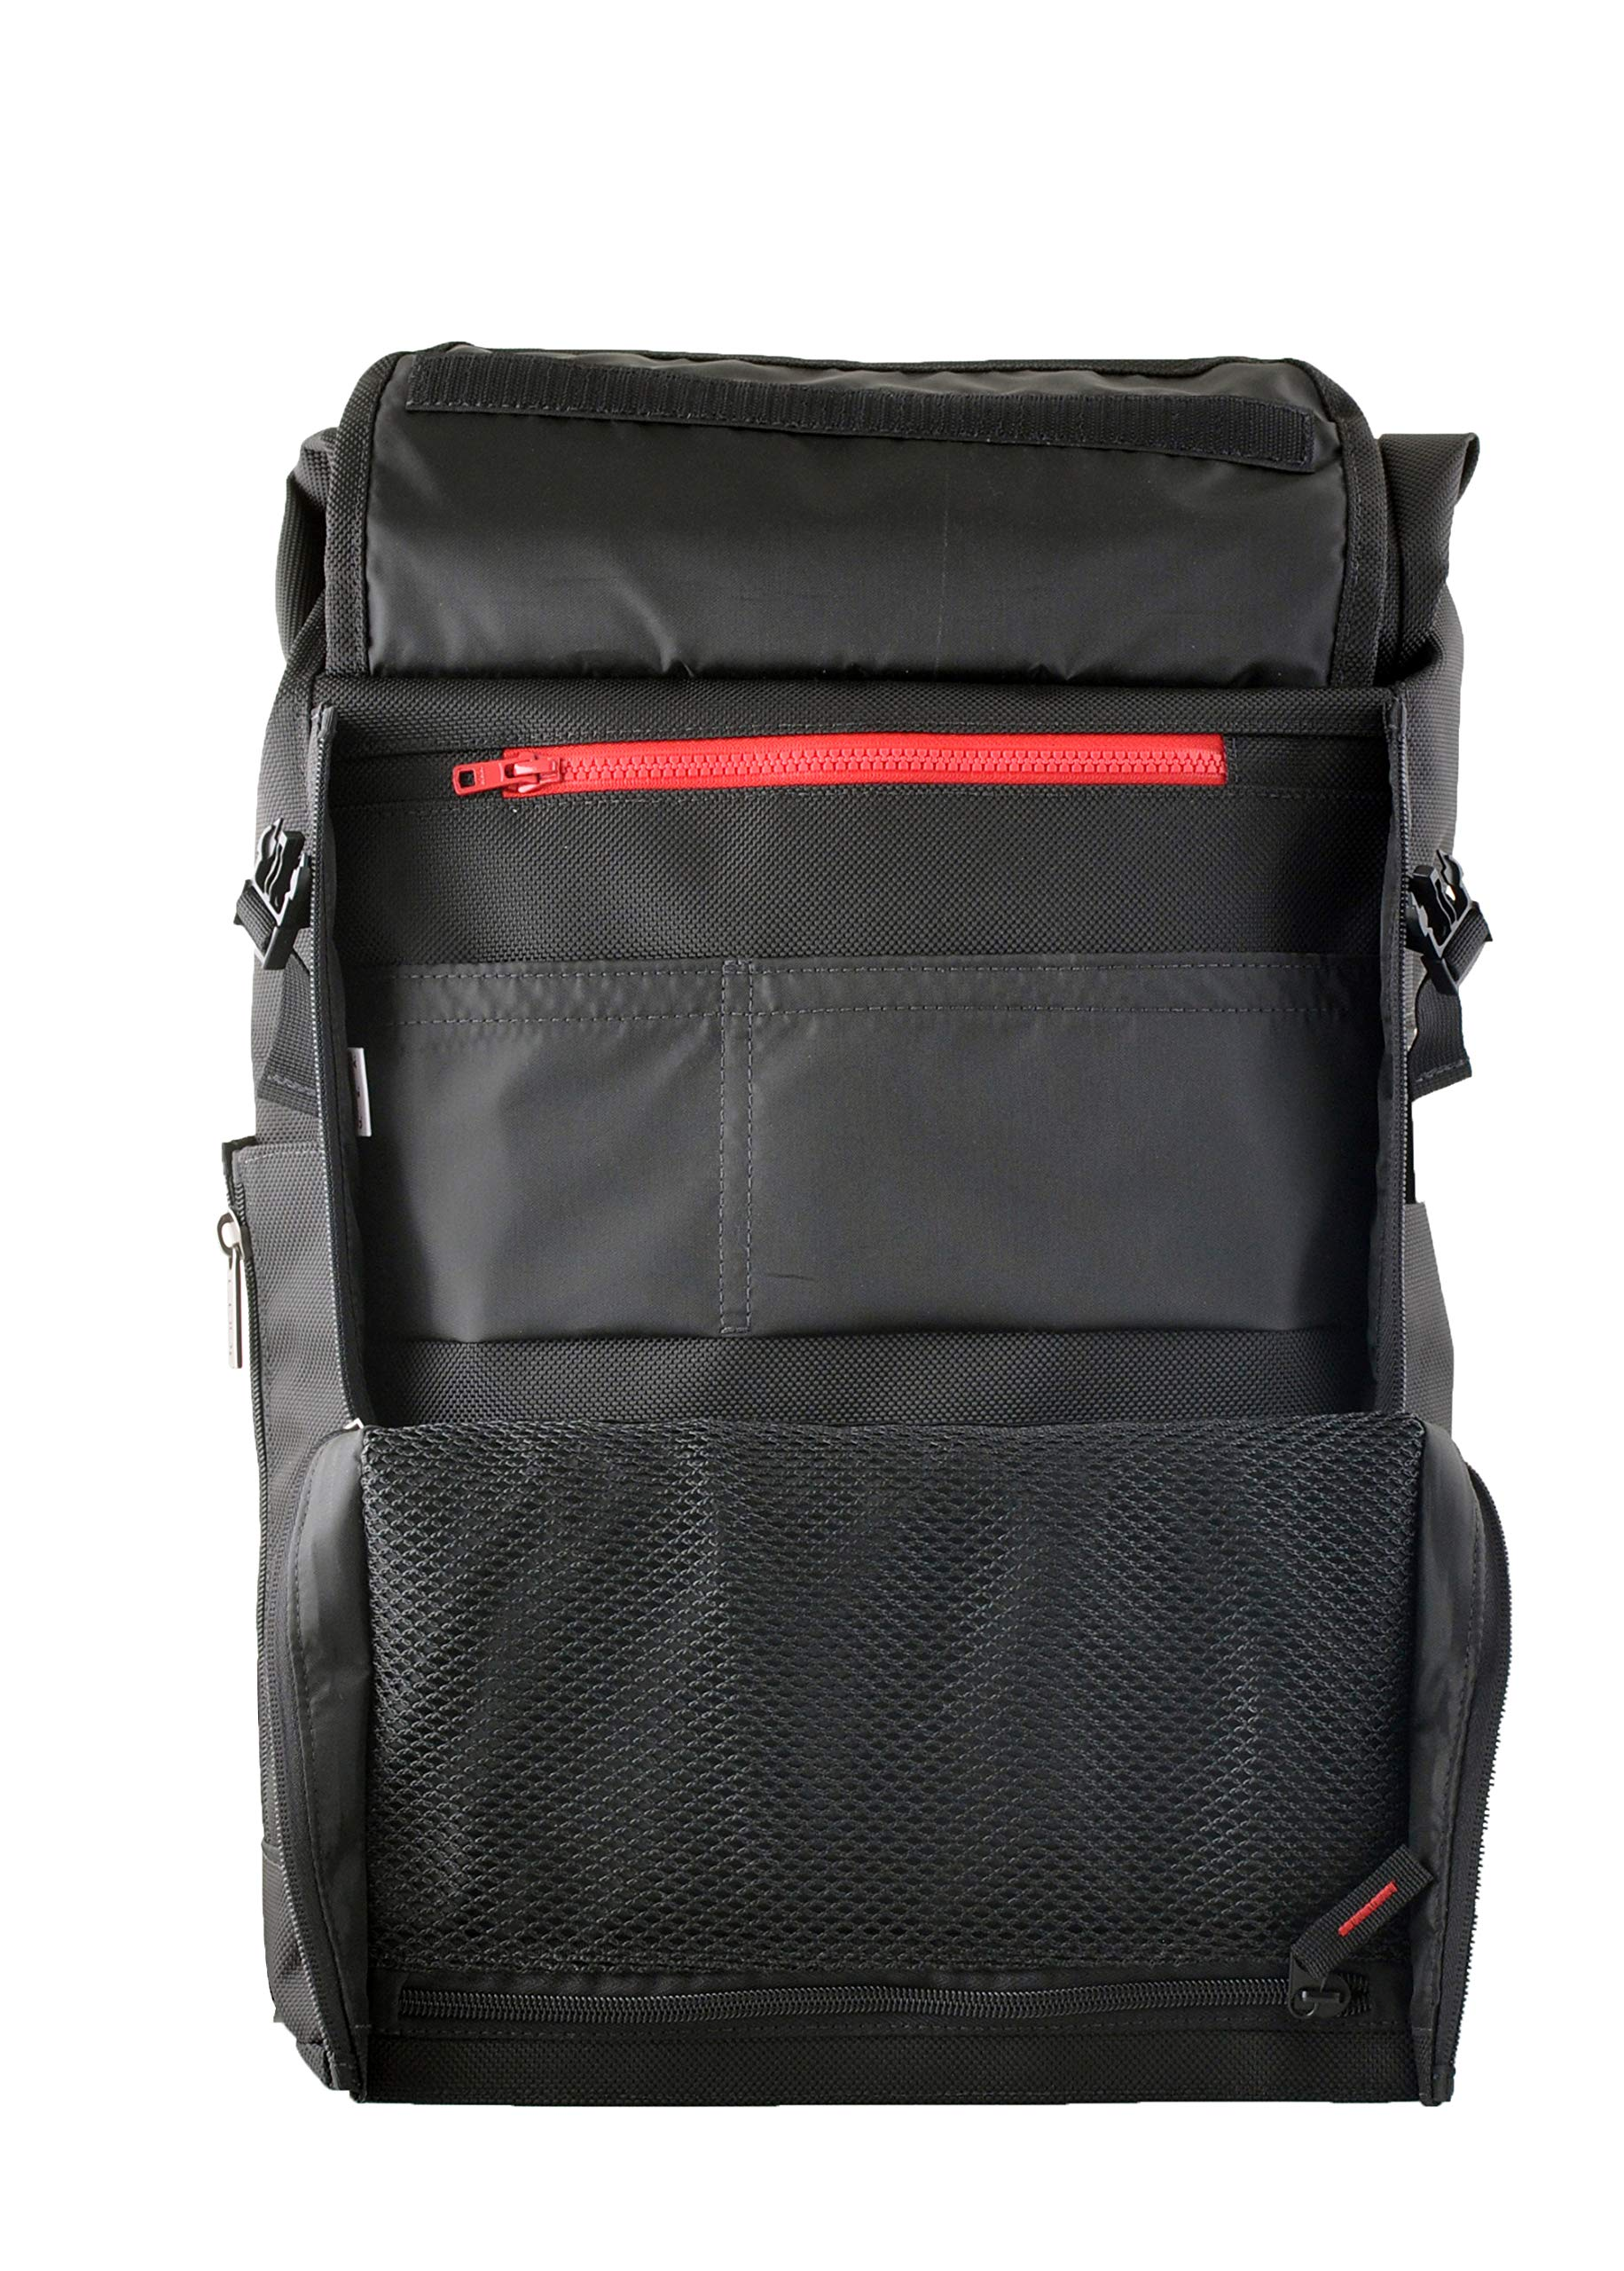 CODi Rolltop 17'' Backpack for Laptops - Daily Commute/Casual Messenger Pack (C7800)